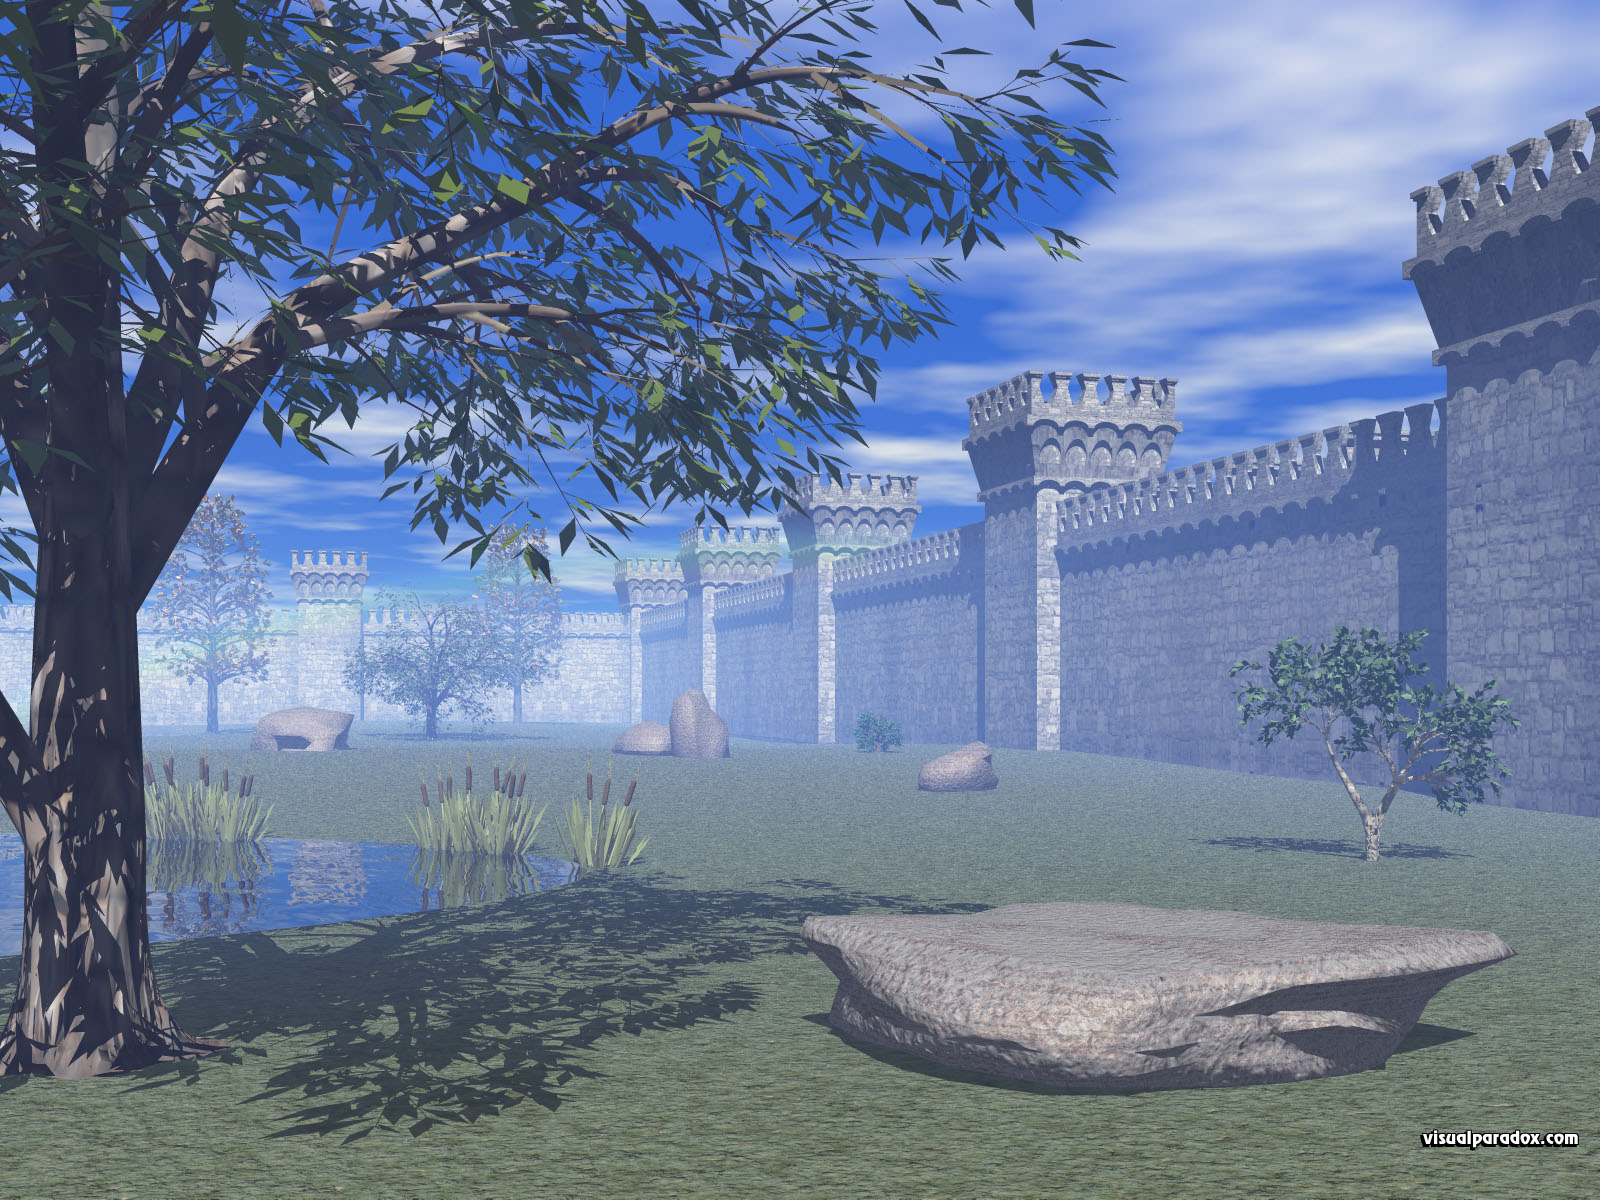 castle, stone, towers, barrier, court, yard, keep, fortifications, medieval, walls, 3d, wallpaper